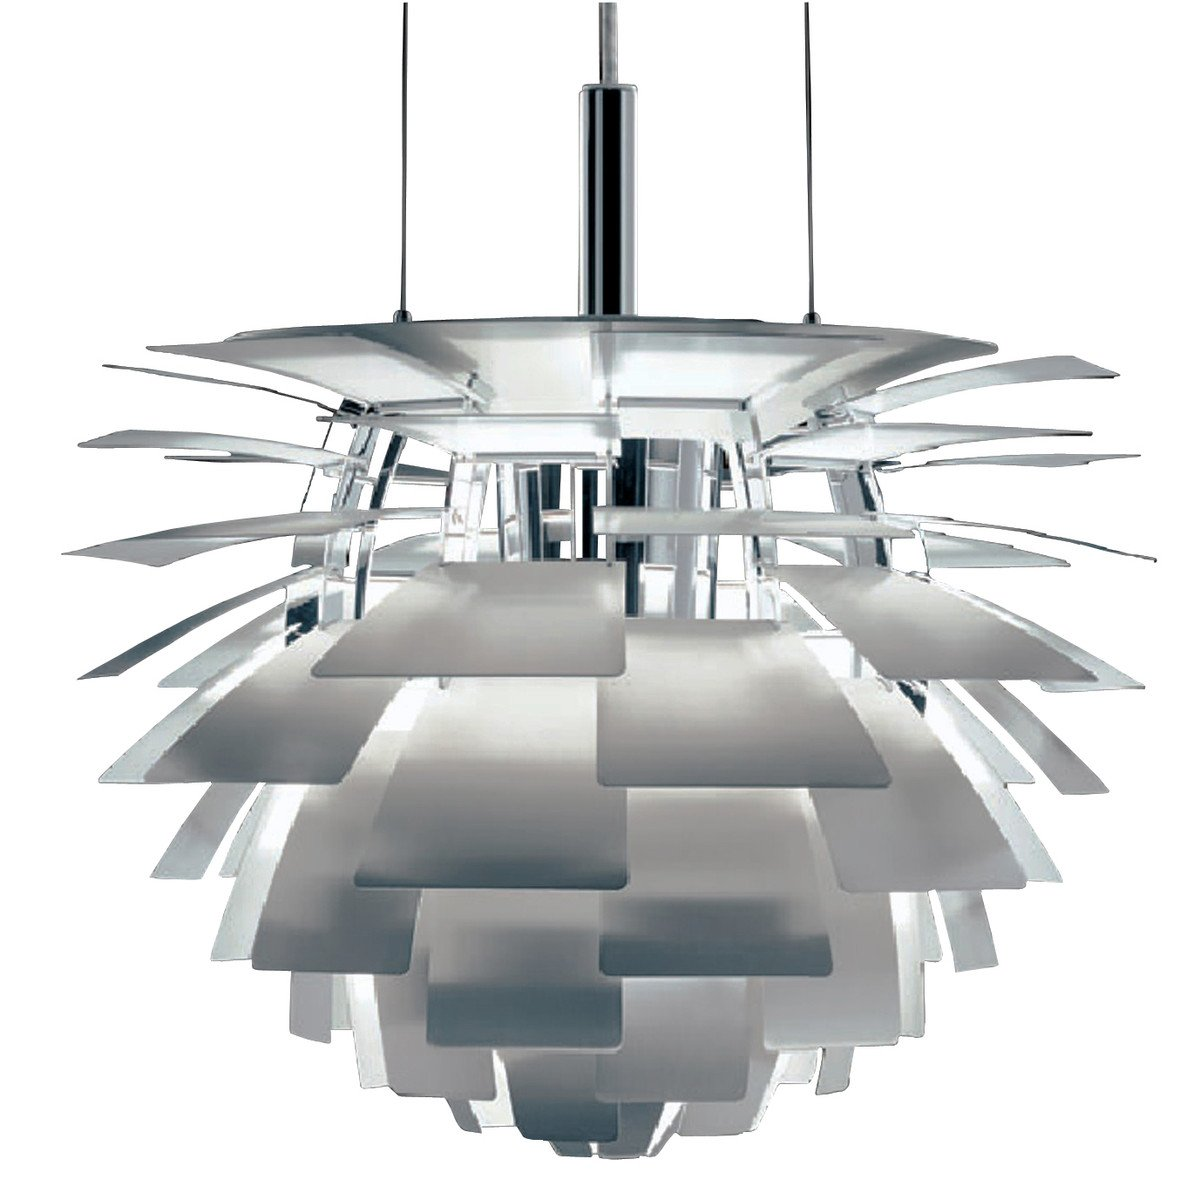 Hot Selling wholesale Louis Poulsen PH Artichoke Diameter  80cm Denmark  Modern chandelier  shipping container spare parts Picture   More Detailed Picture  . Poulsen Lighting Artichoke. Home Design Ideas